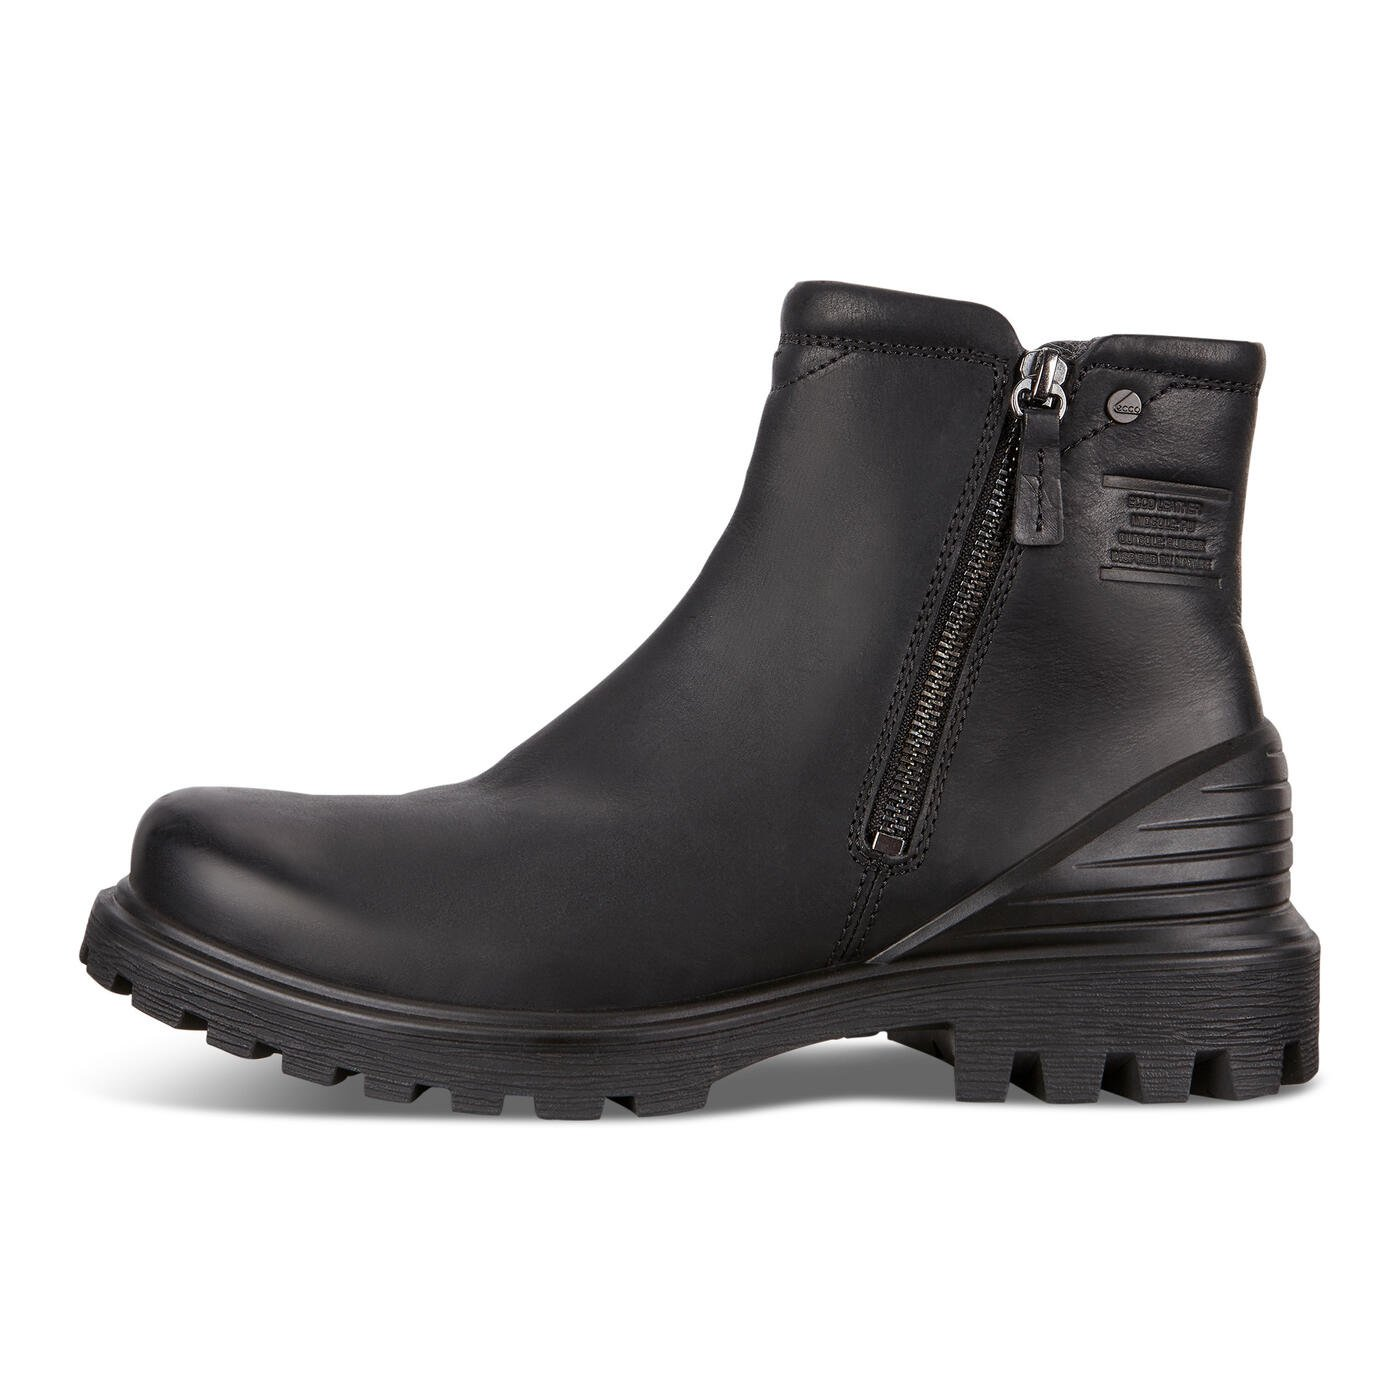 ECCO TREDTRAY Men's Zip Boot